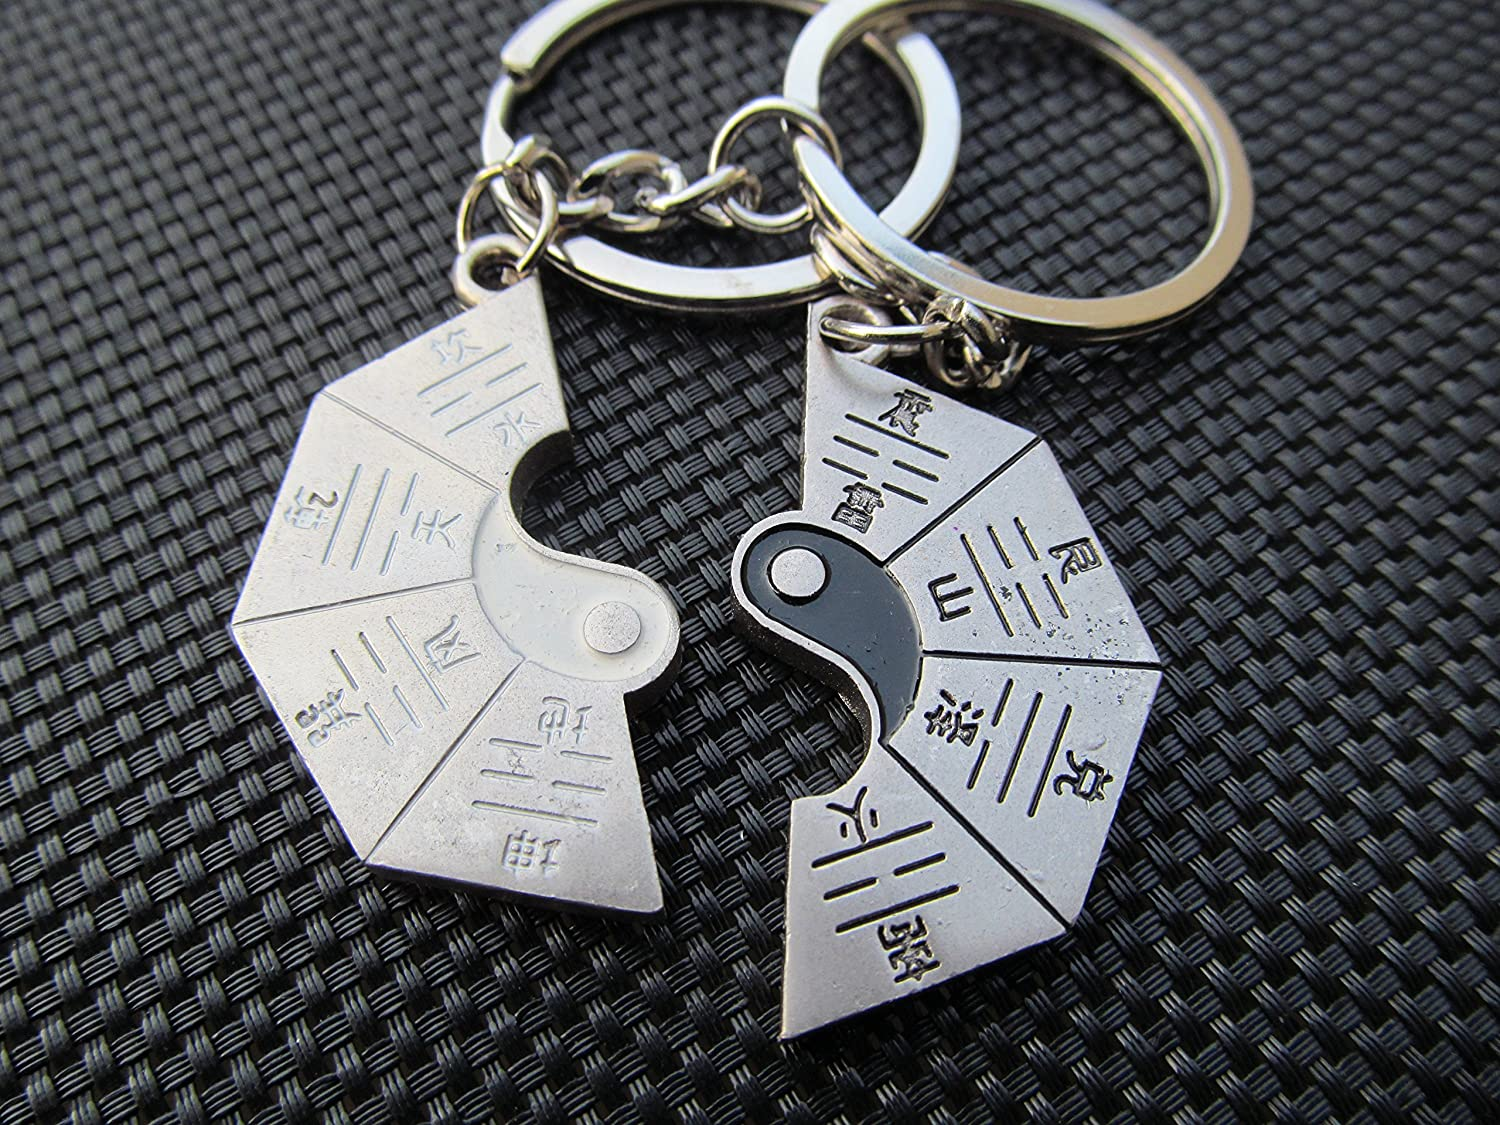 20+ different designs of Lovers couples set of 2 cute silver tone heart & key jigsaw keyrings love you forever male & female valentine gift idea posted from London - by Fat-catz-copy-catz lovers keyrings